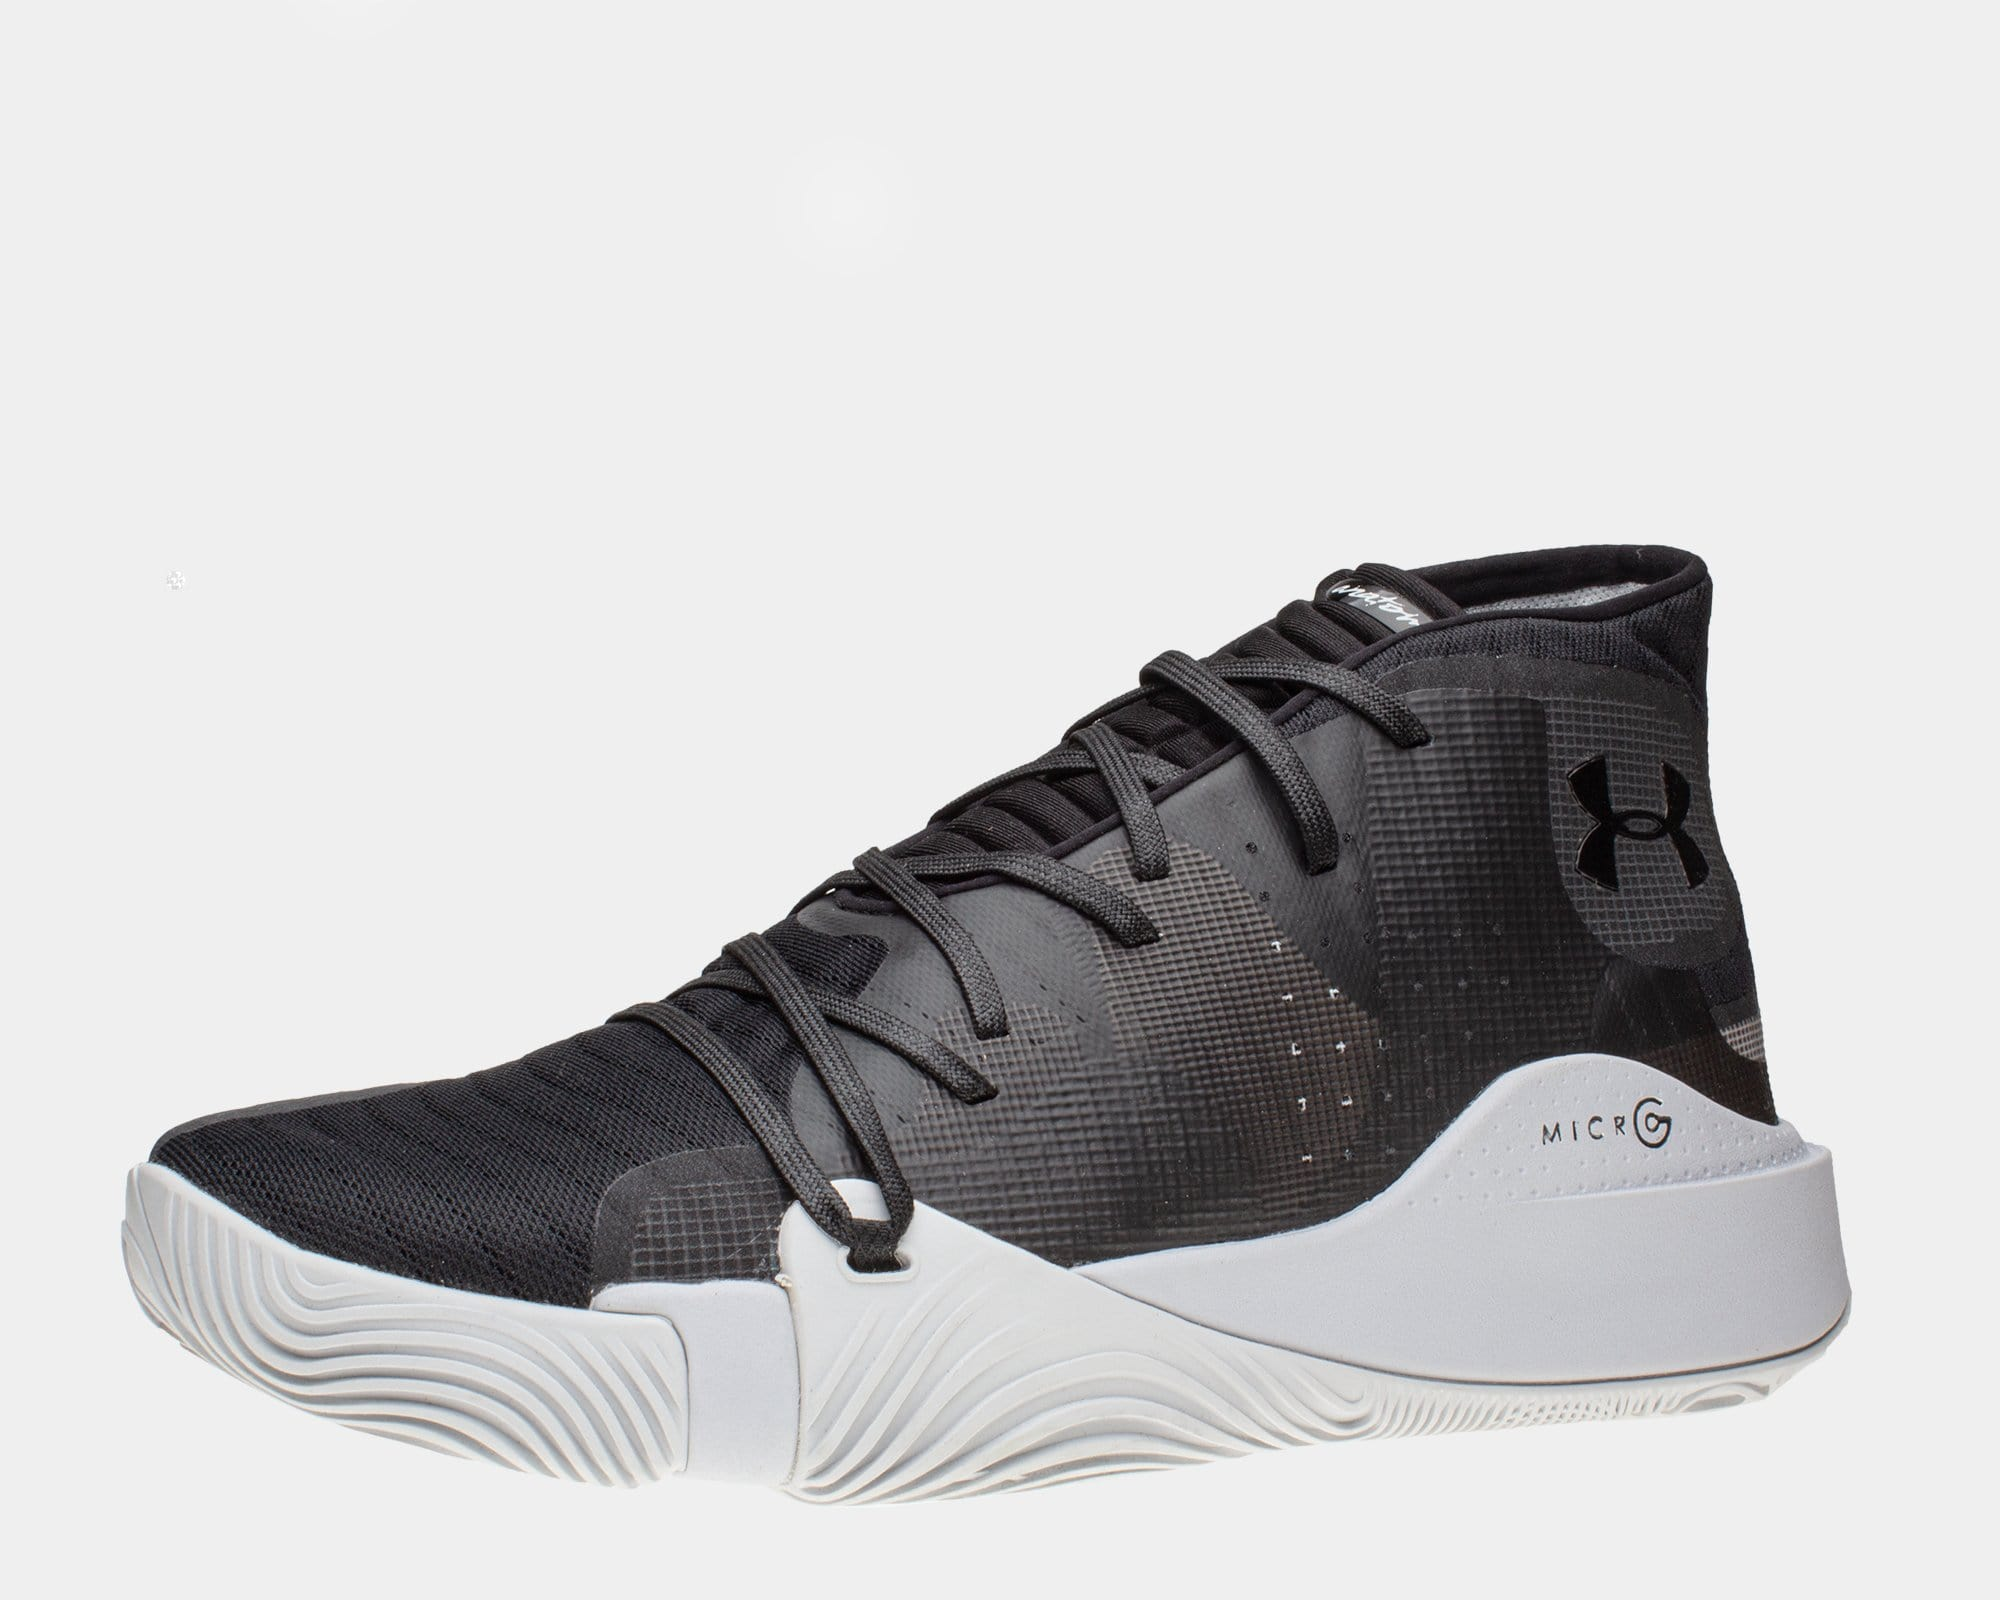 Under Armour Mens Spawn Mid Basketball Shoes Black Sports Breathable Lightweight